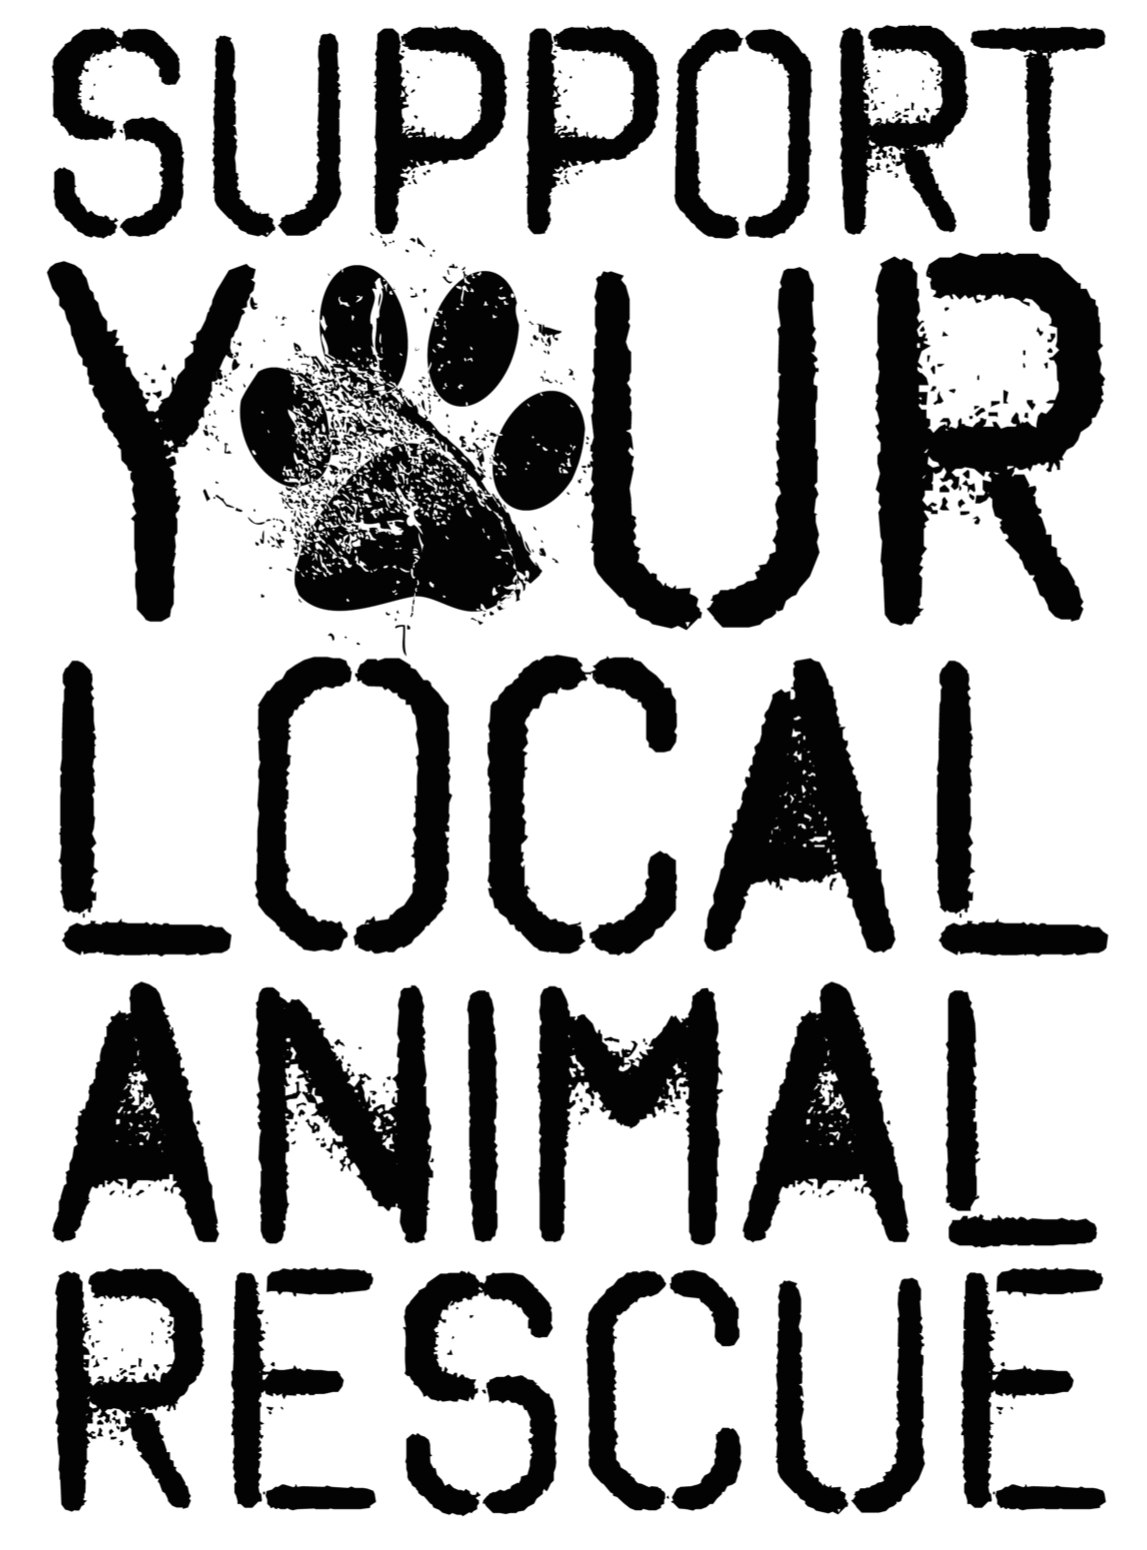 SUPPORT YOUR LOCAL ANIMAL RESCUE